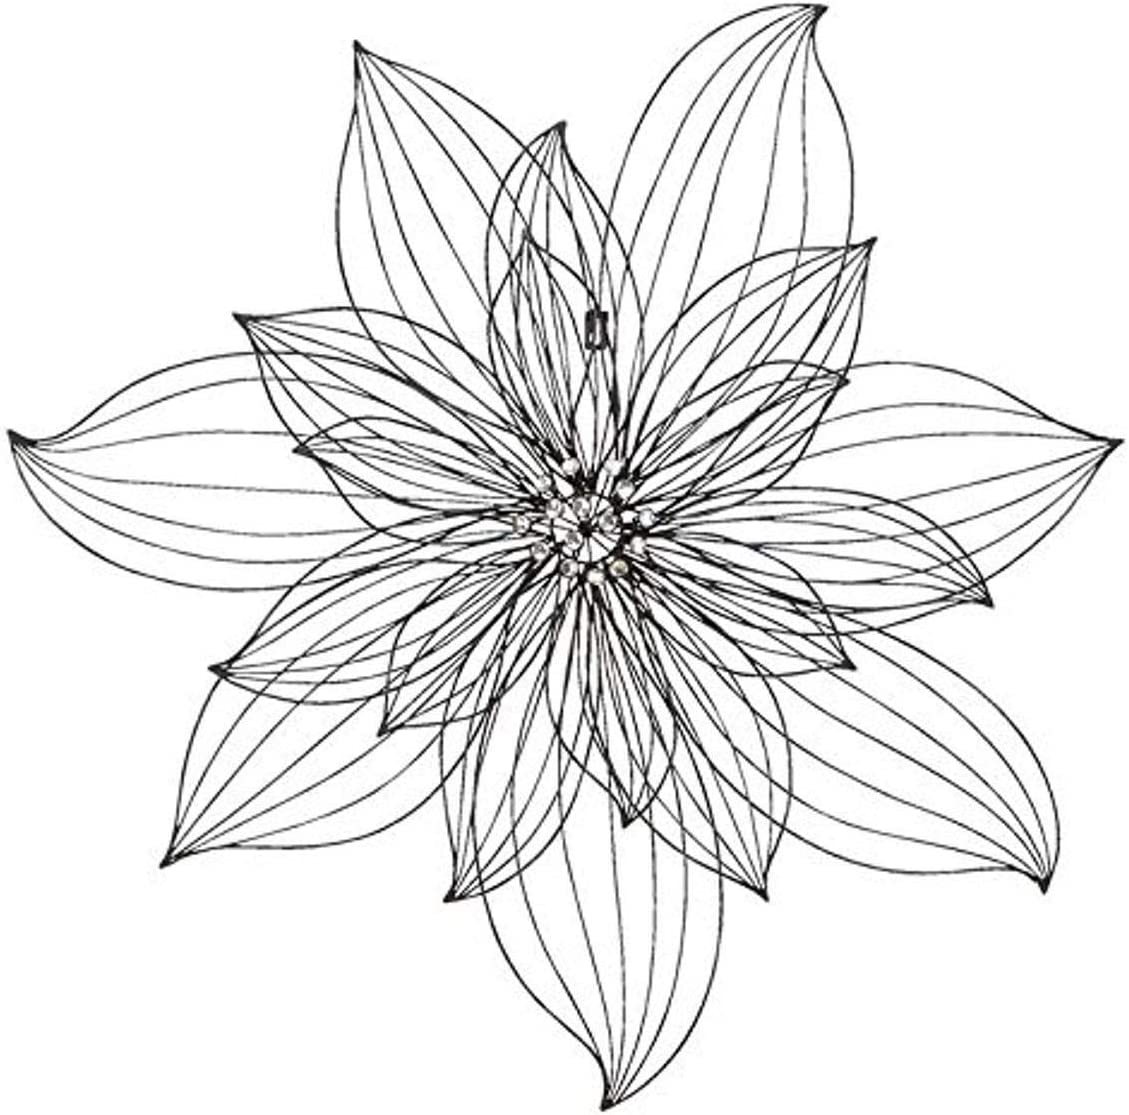 """Deco 79 Modern Metal Outline Floral Wall Decor, 29""""H x 29""""L, Textured Black Finish"""